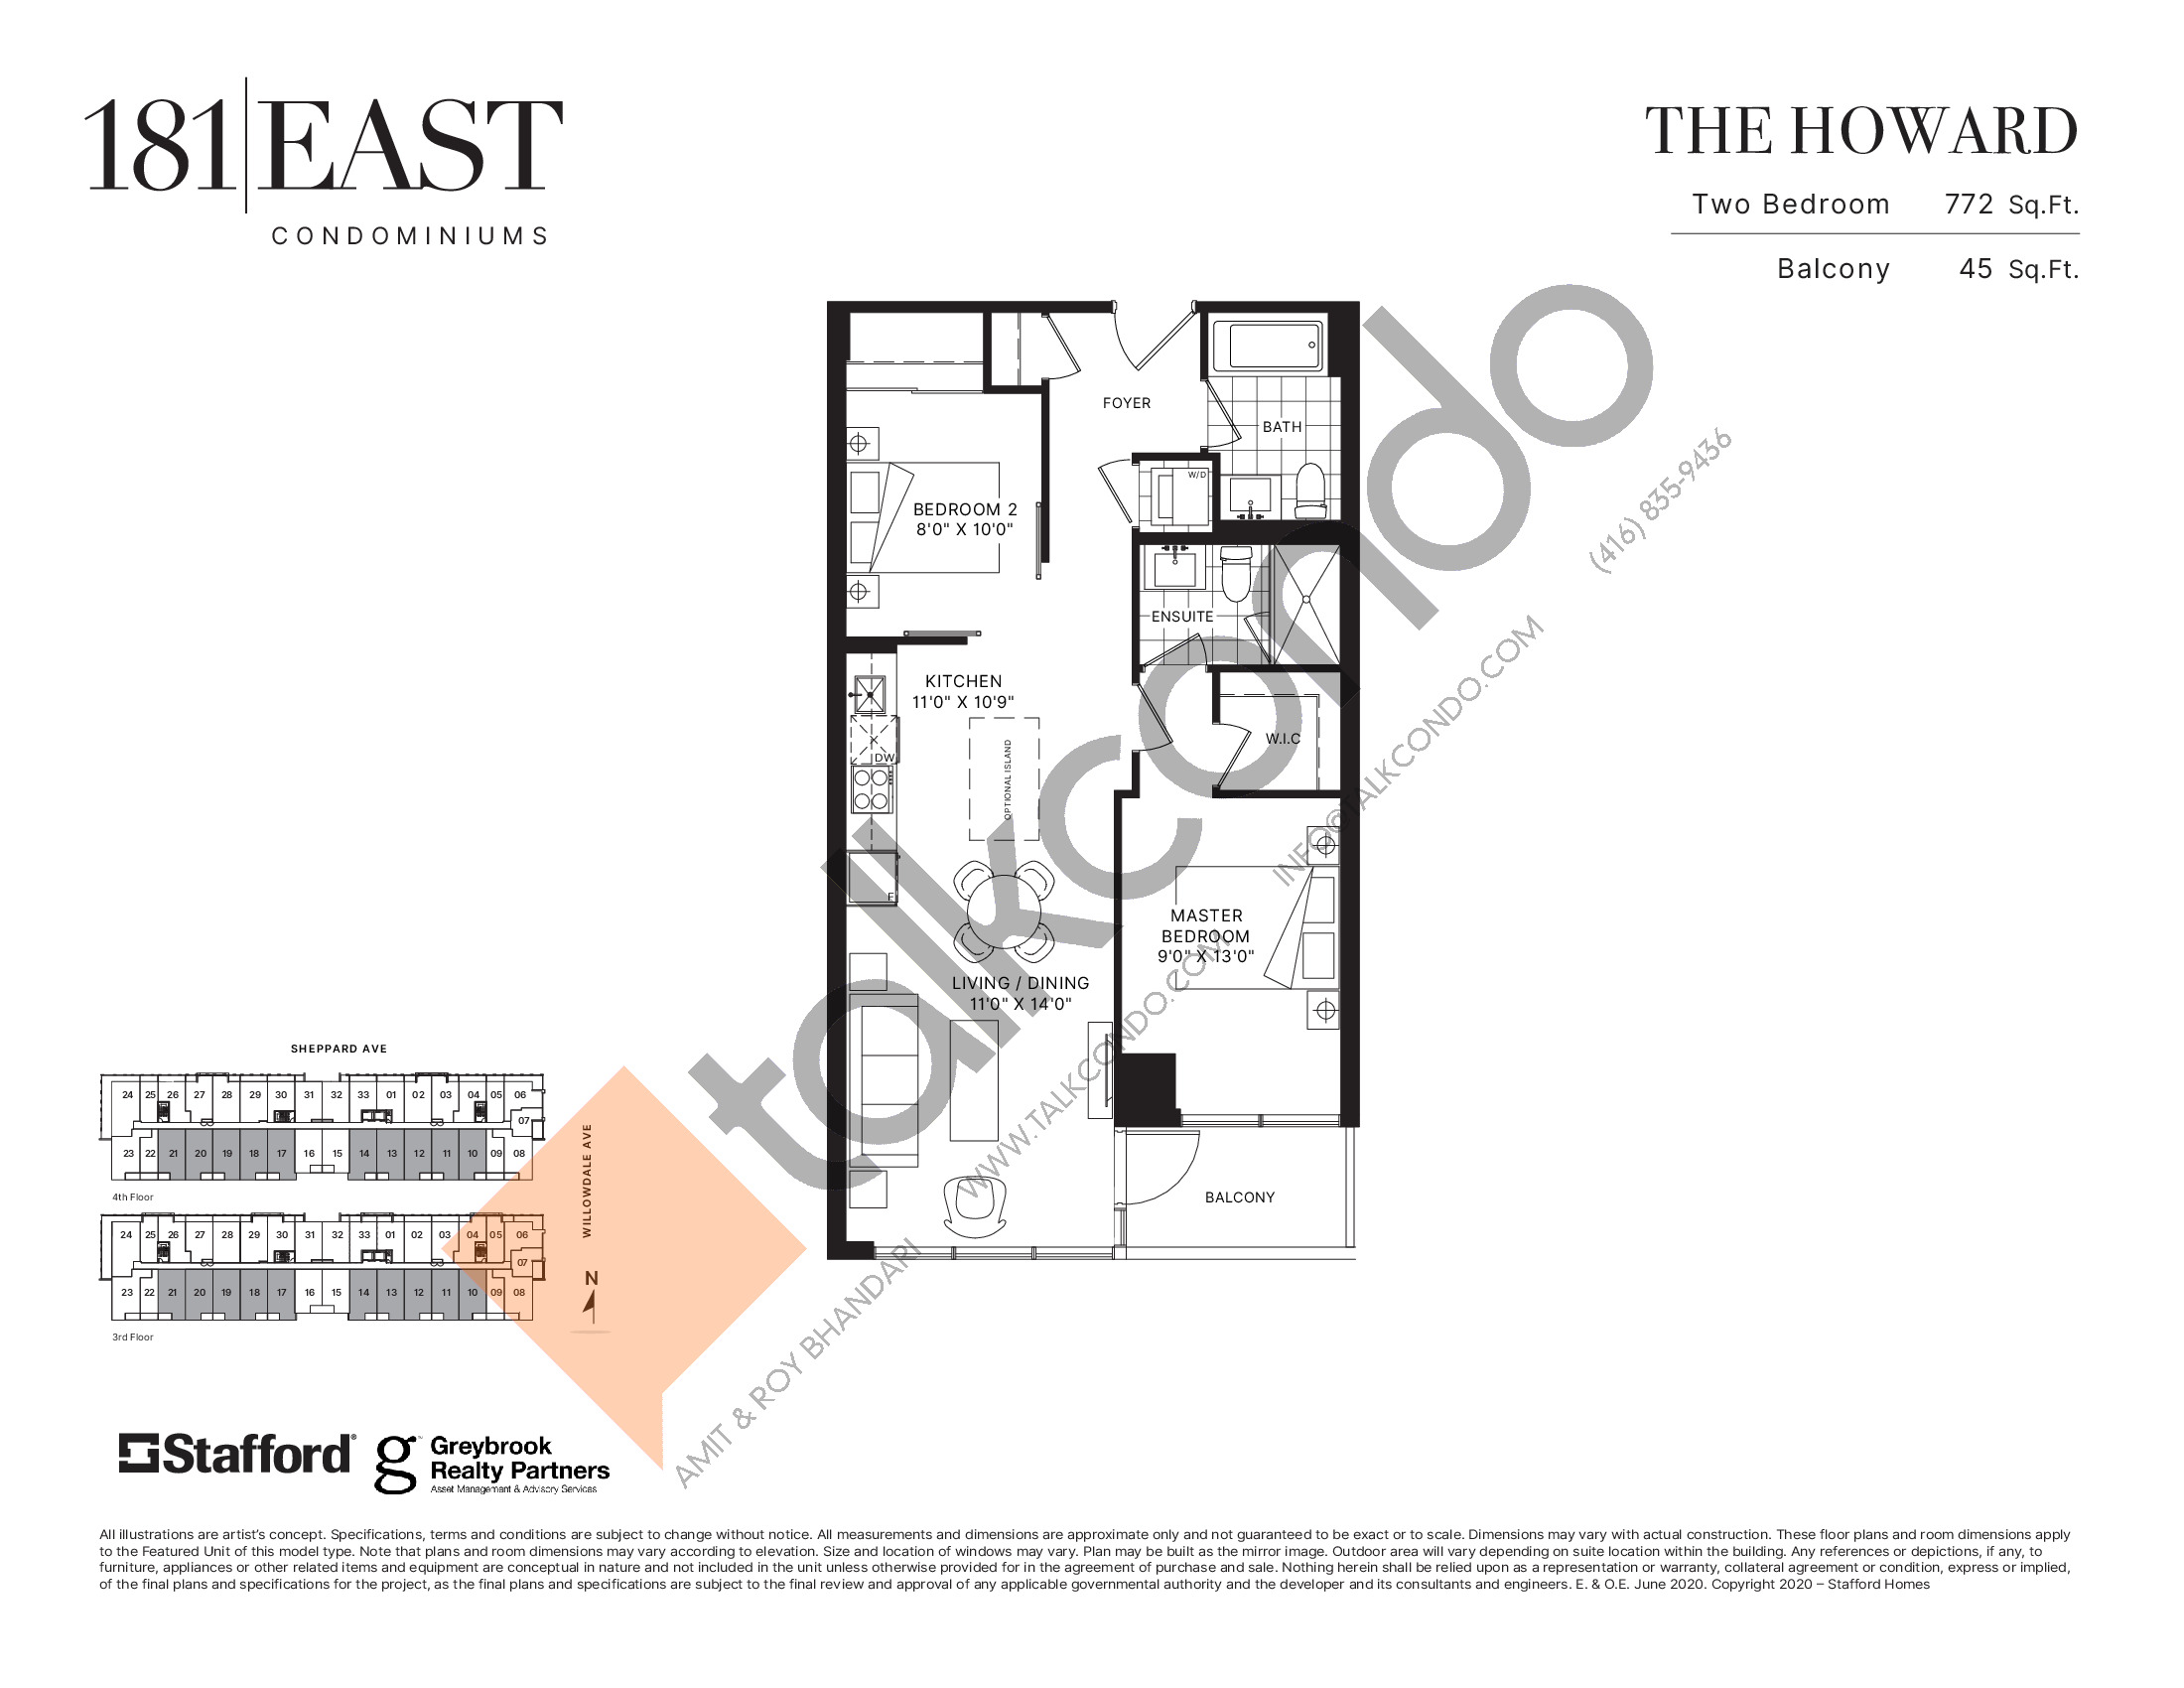 The Howard Floor Plan at 181 East Condos - 772 sq.ft